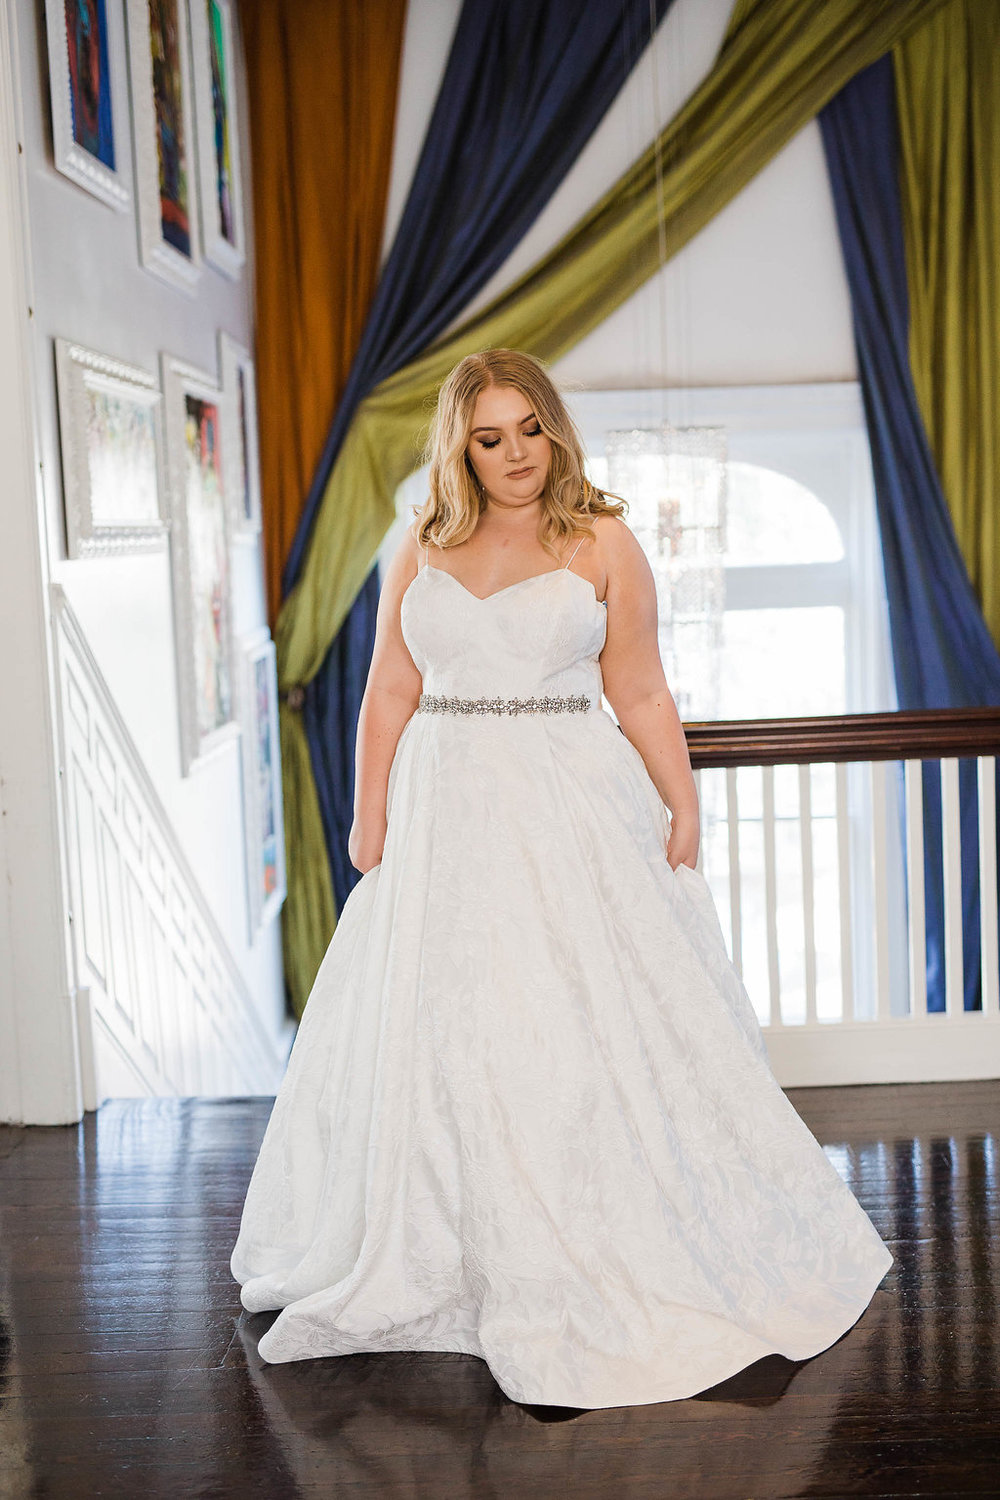 ivory-and-beau-bridal-boutique-savannah-wedding-dress-savannah-wedding-gown-savannah-bridal-boutique-savannah-bridesmaids-savannah-plus-sized-wedding-gowns-plus-sized-wedding-dresses-savannah-maggie-sottero-savannah-2.JPG